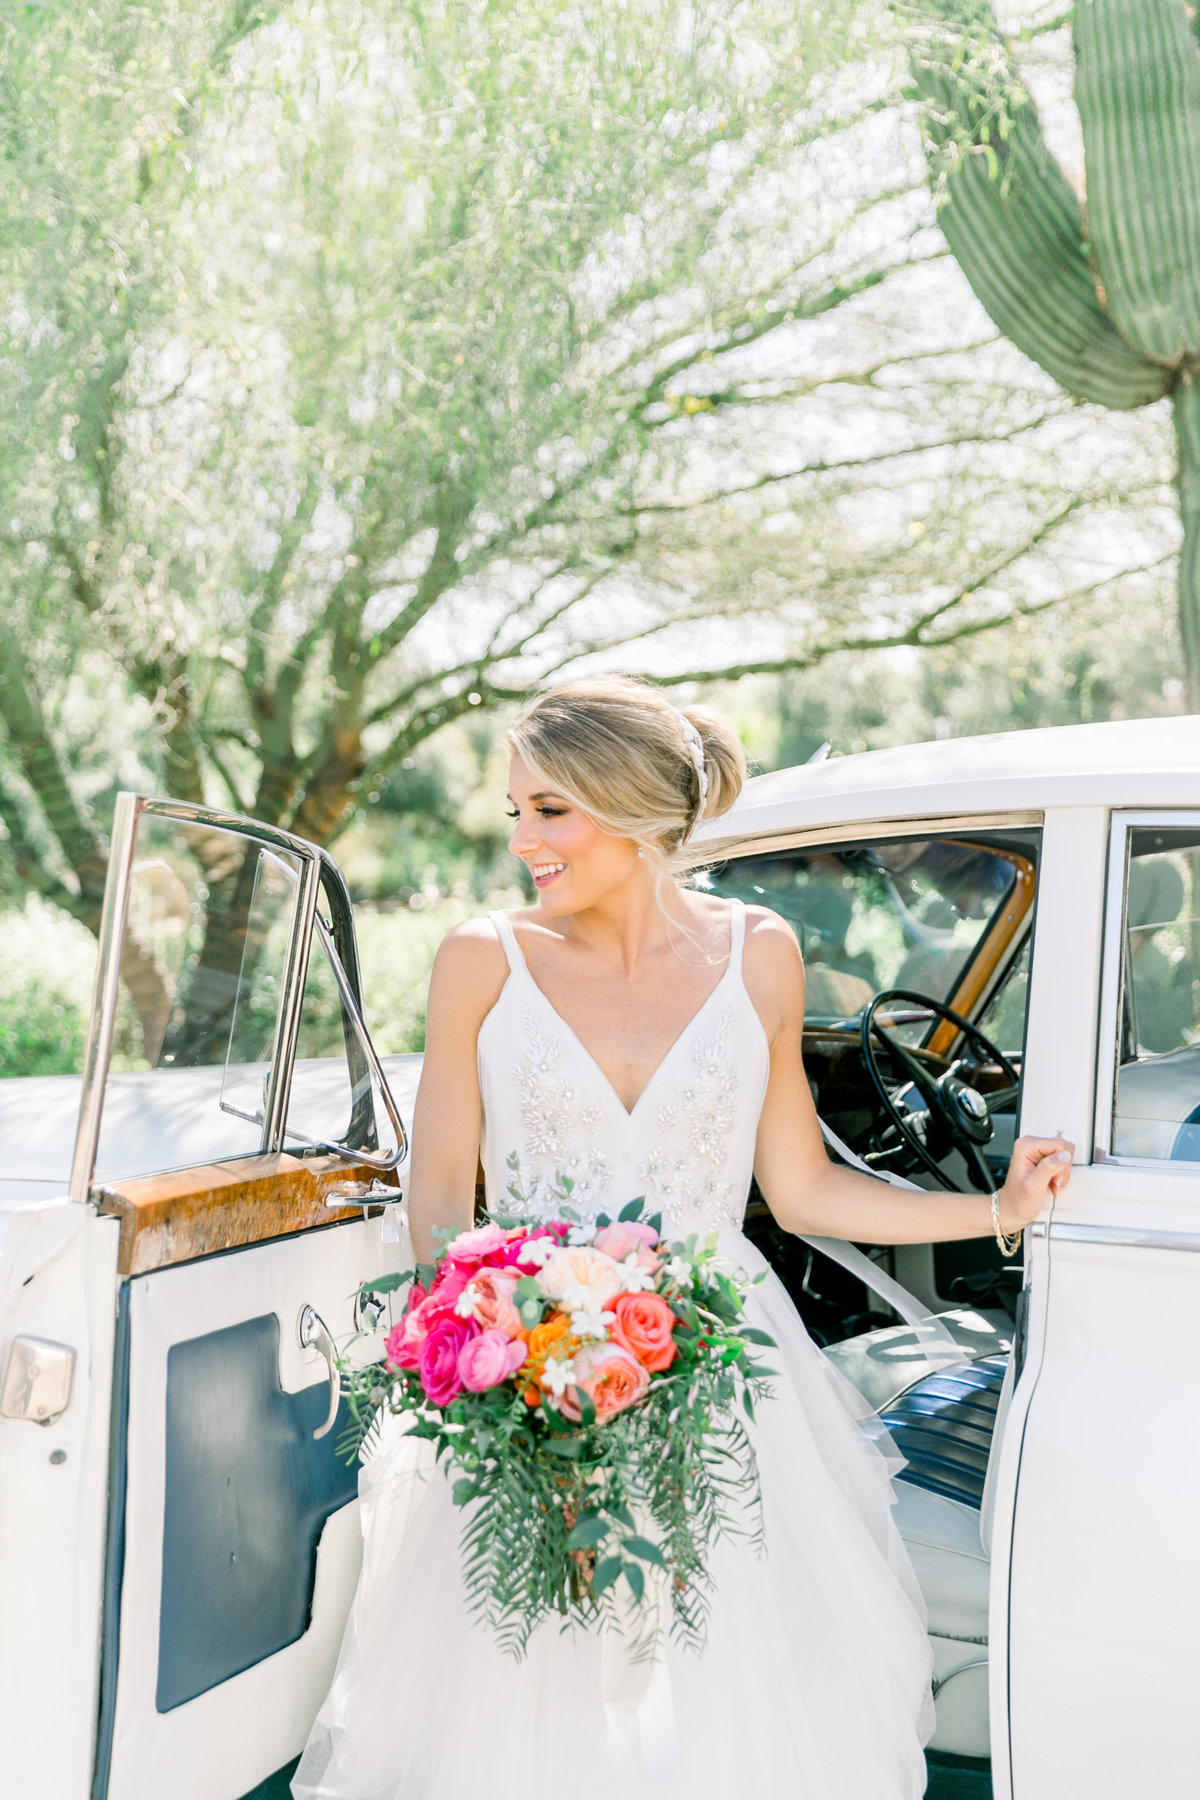 Karlie Colleen Photography - El Chorro Arizona Desert Wedding - Kylie & Doug-256